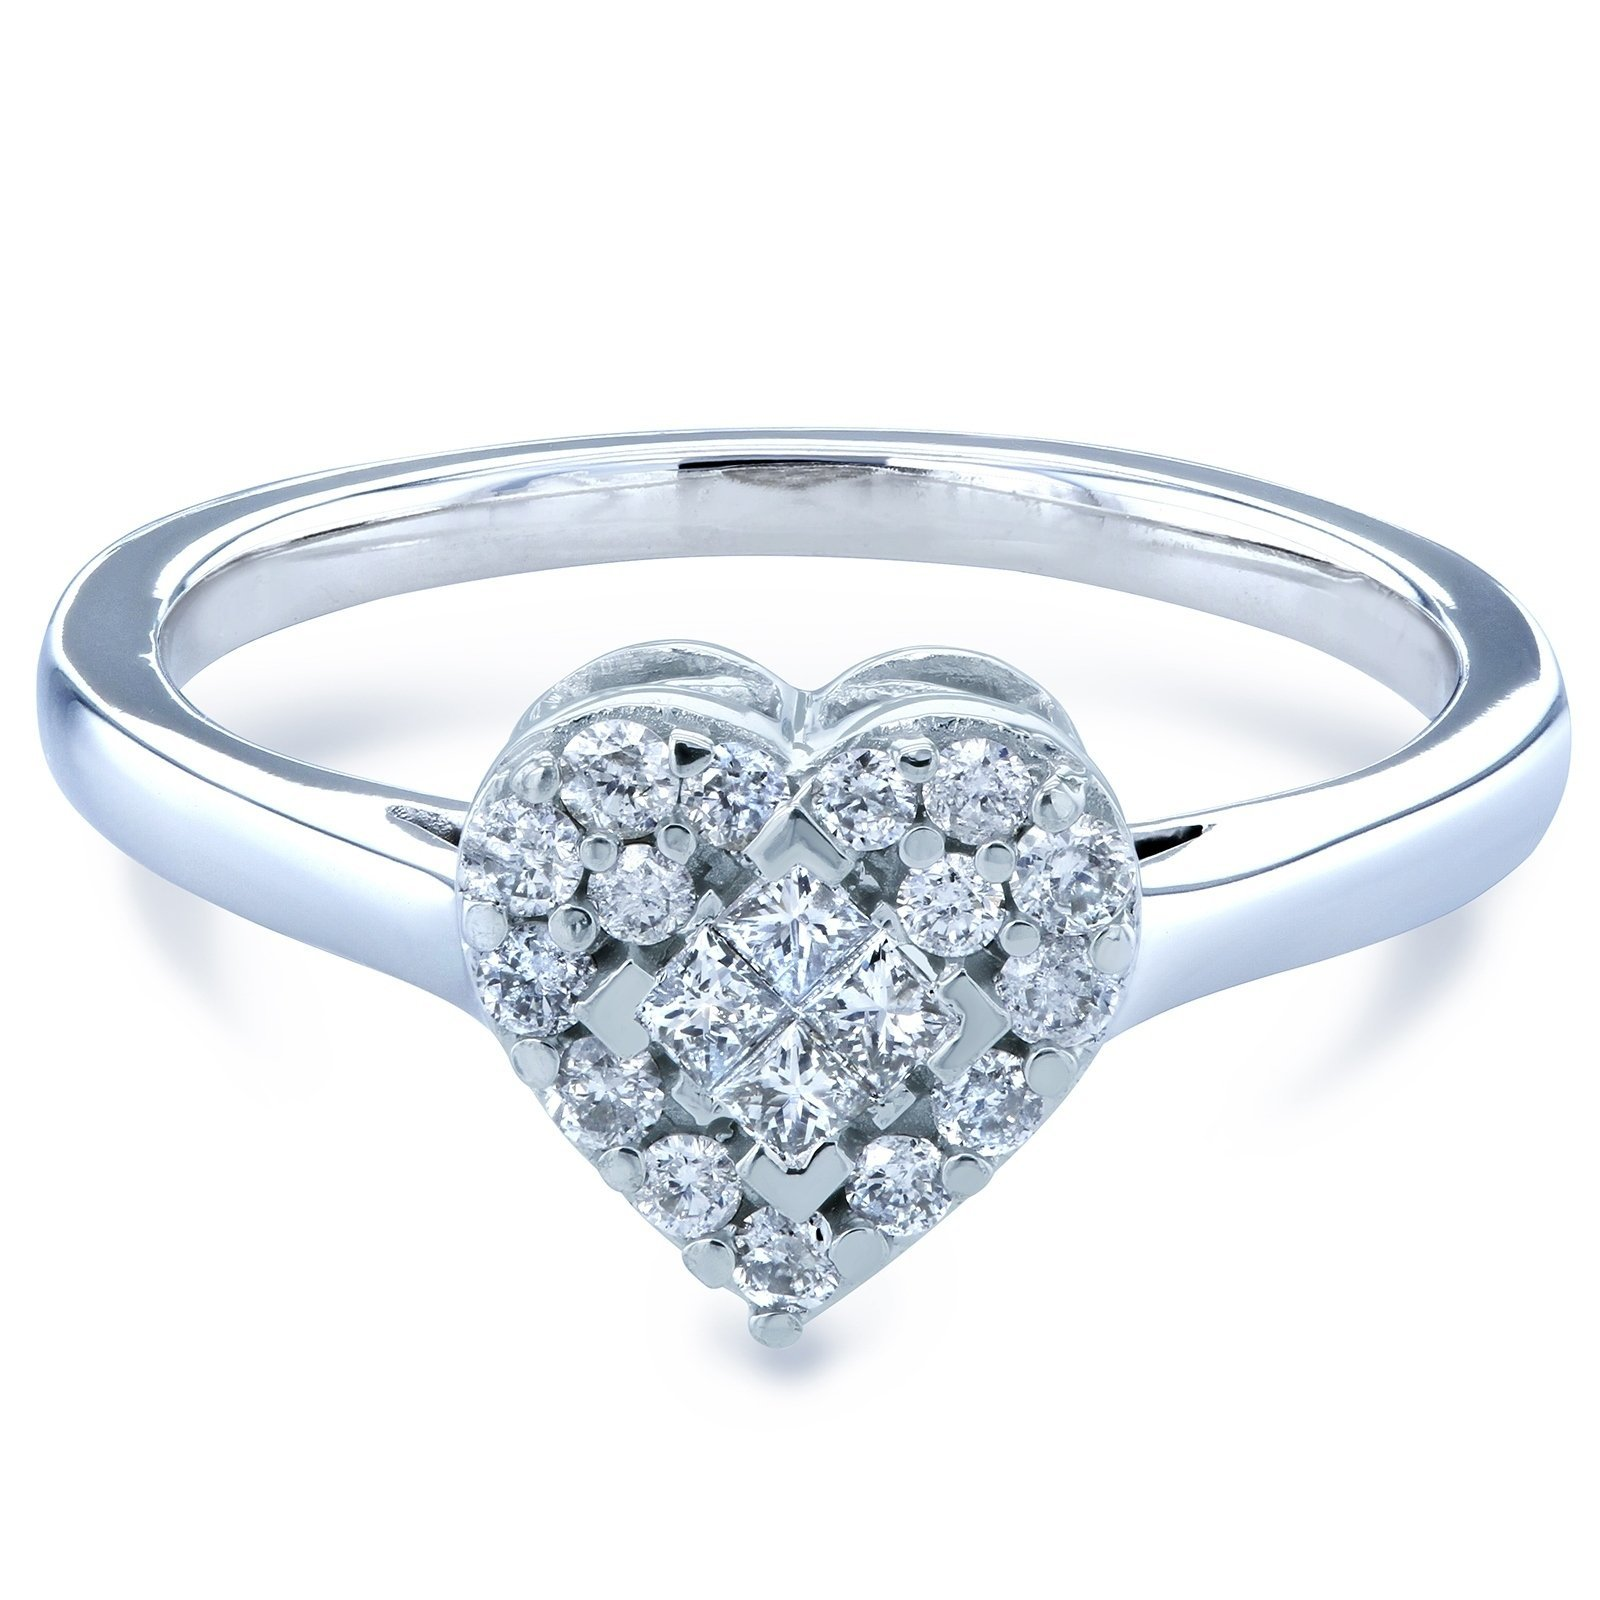 Annello by Kobelli 10k White Gold 1/4ct TDW Heart Cluster with Invisible Set Princess Center Diamond Engagement Ring from Overstock photo